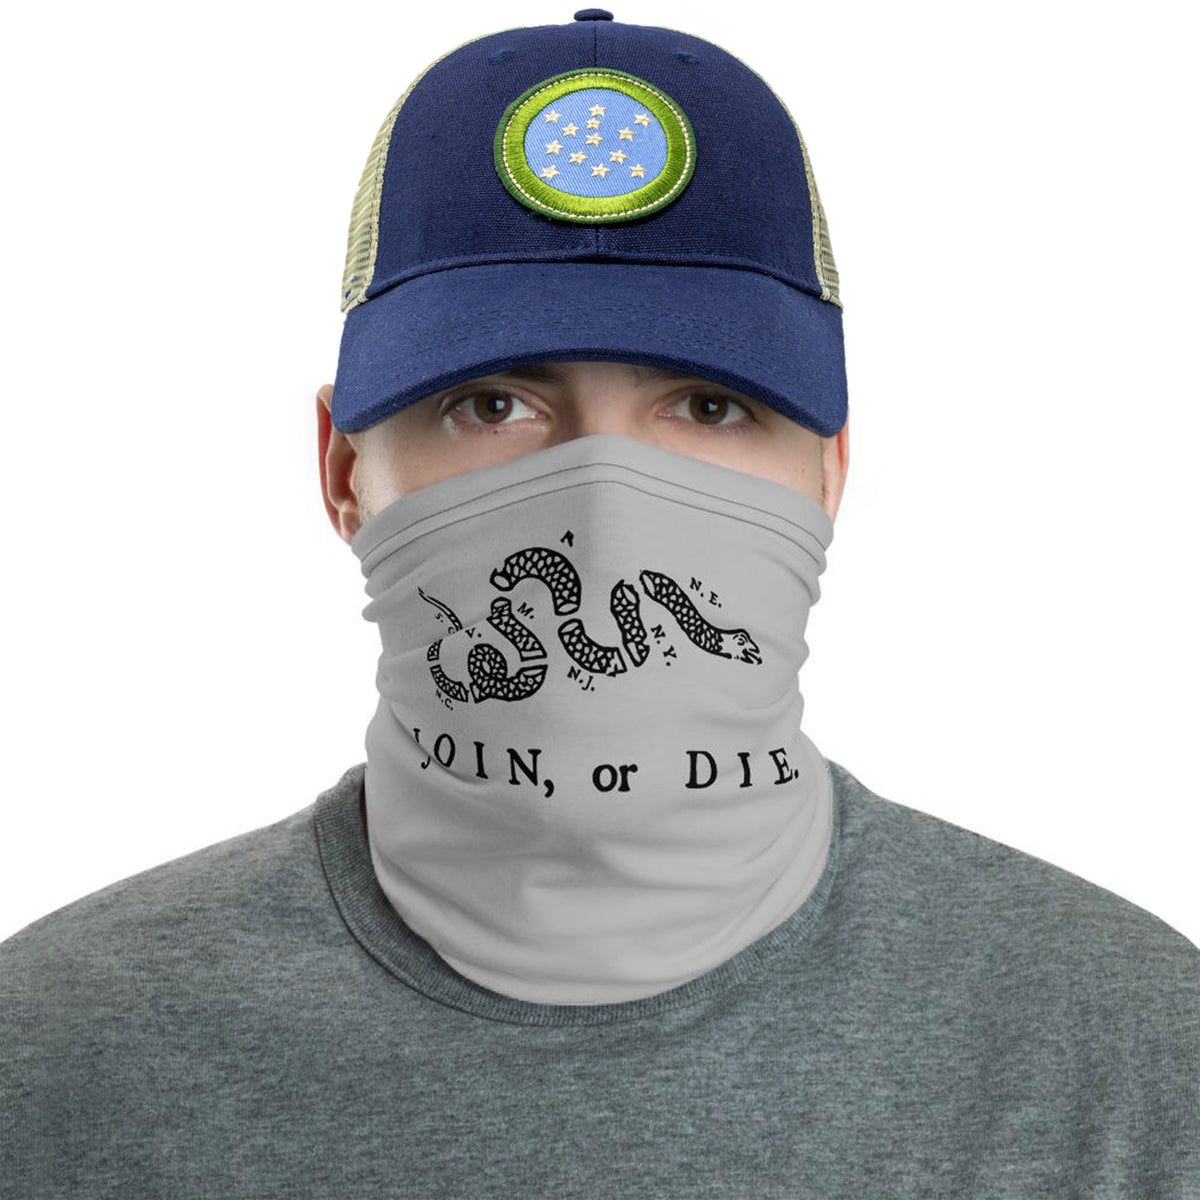 Join or Die Face Mask